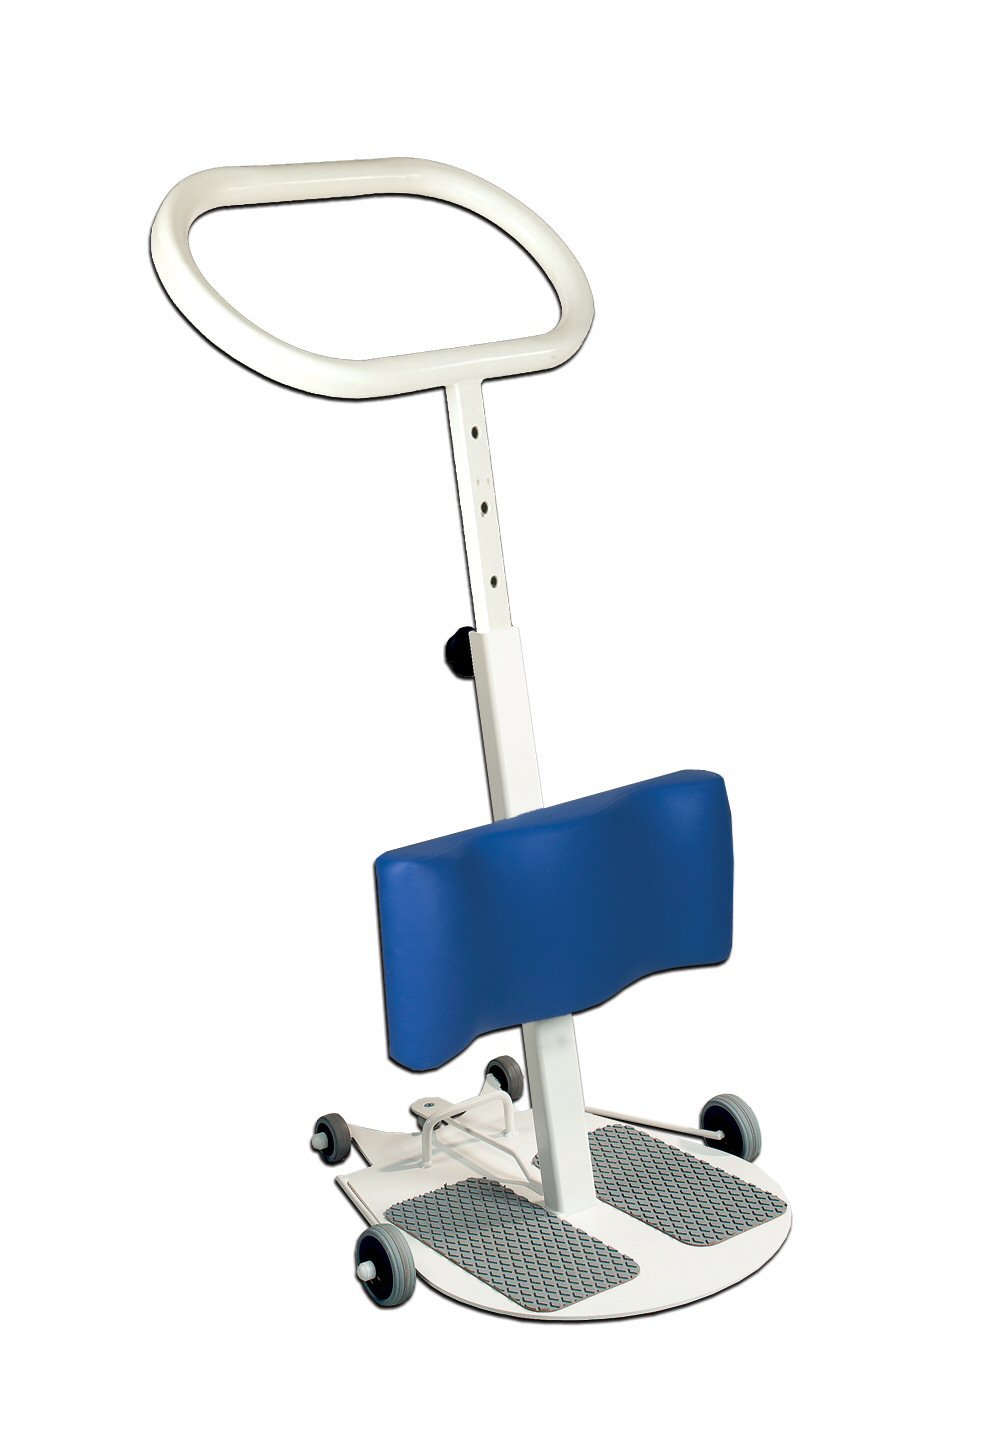 Rota stand for patient handling